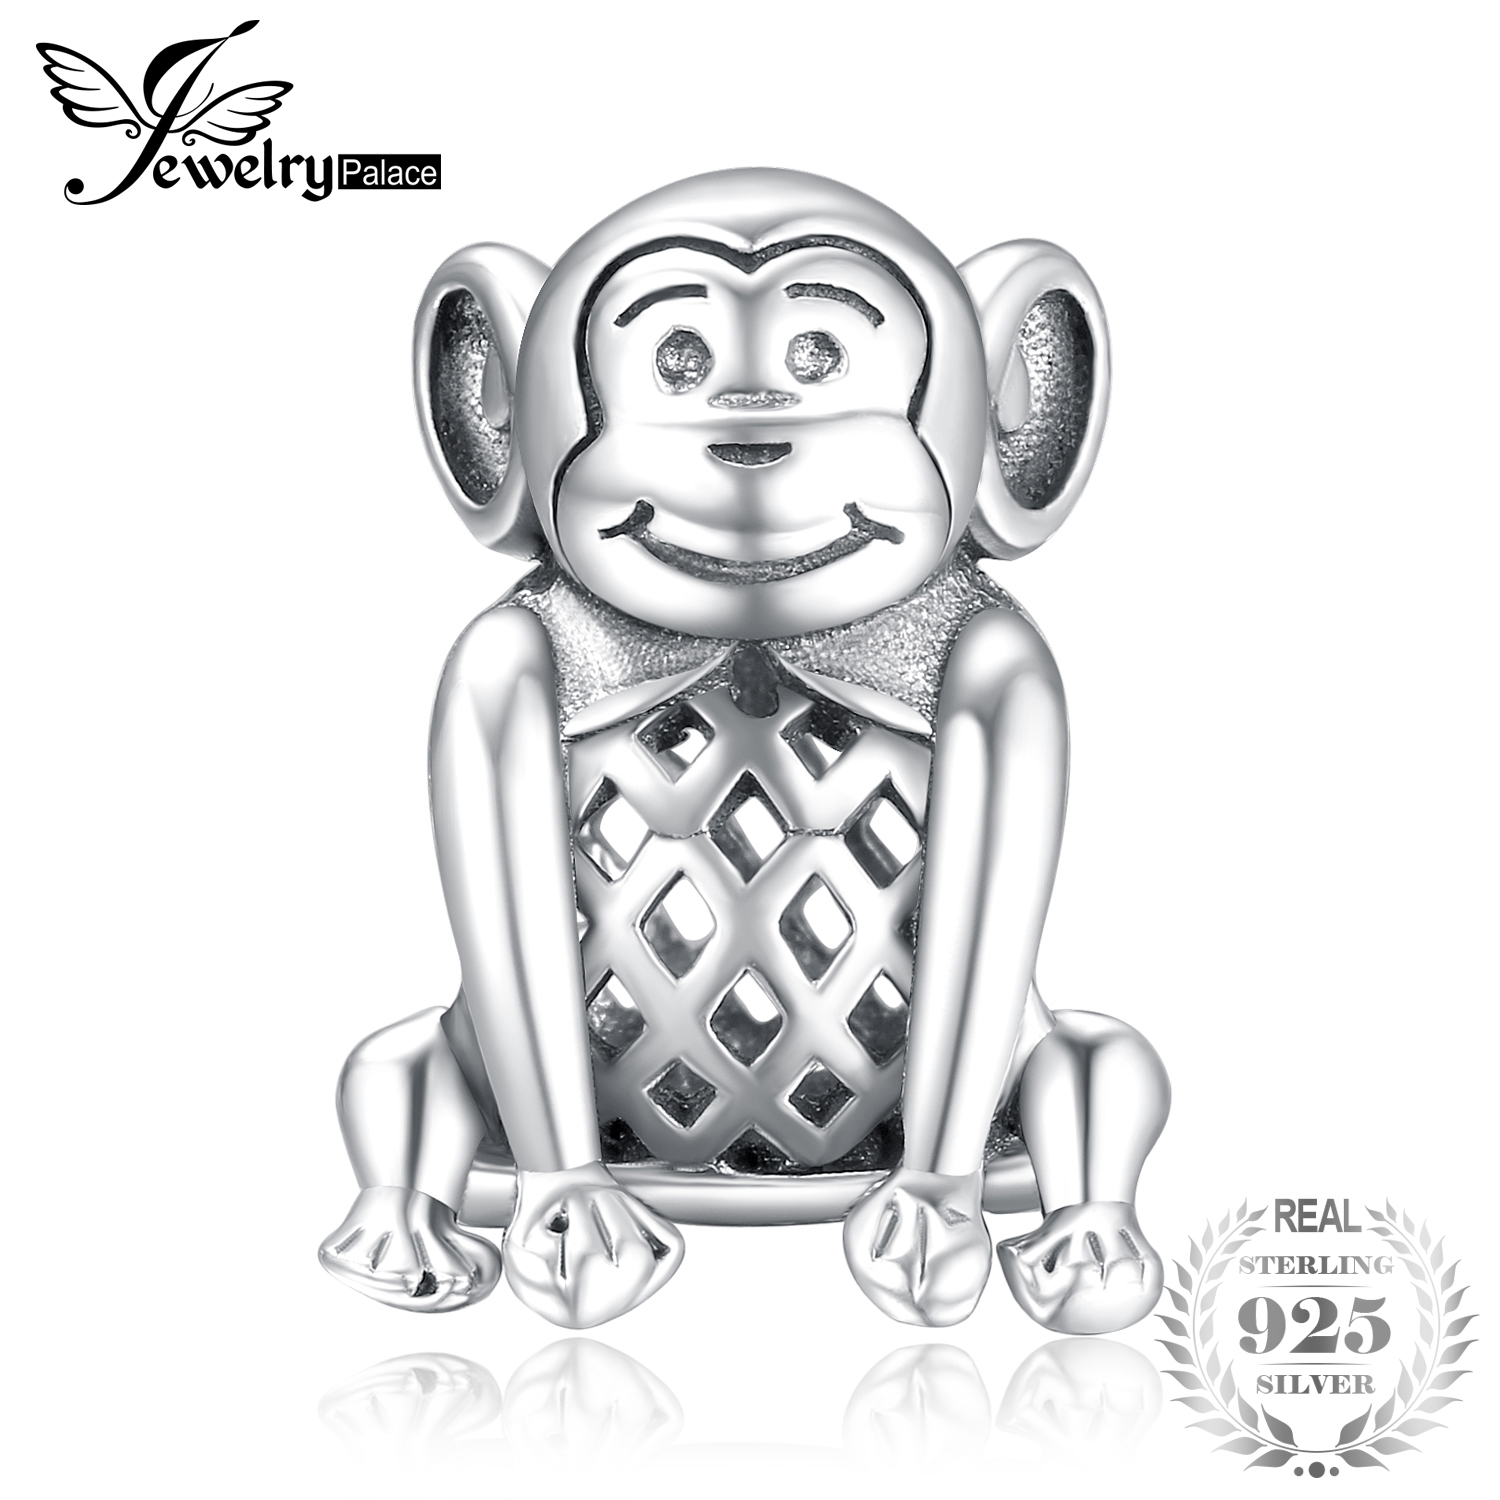 Jewelrypalace Diy Bead Charm For Women Bracelets Magic Monkey Bead 925 Sterling Silver Charm Fit Bracelets Fashion Brands Beads Jewelry & Accessories